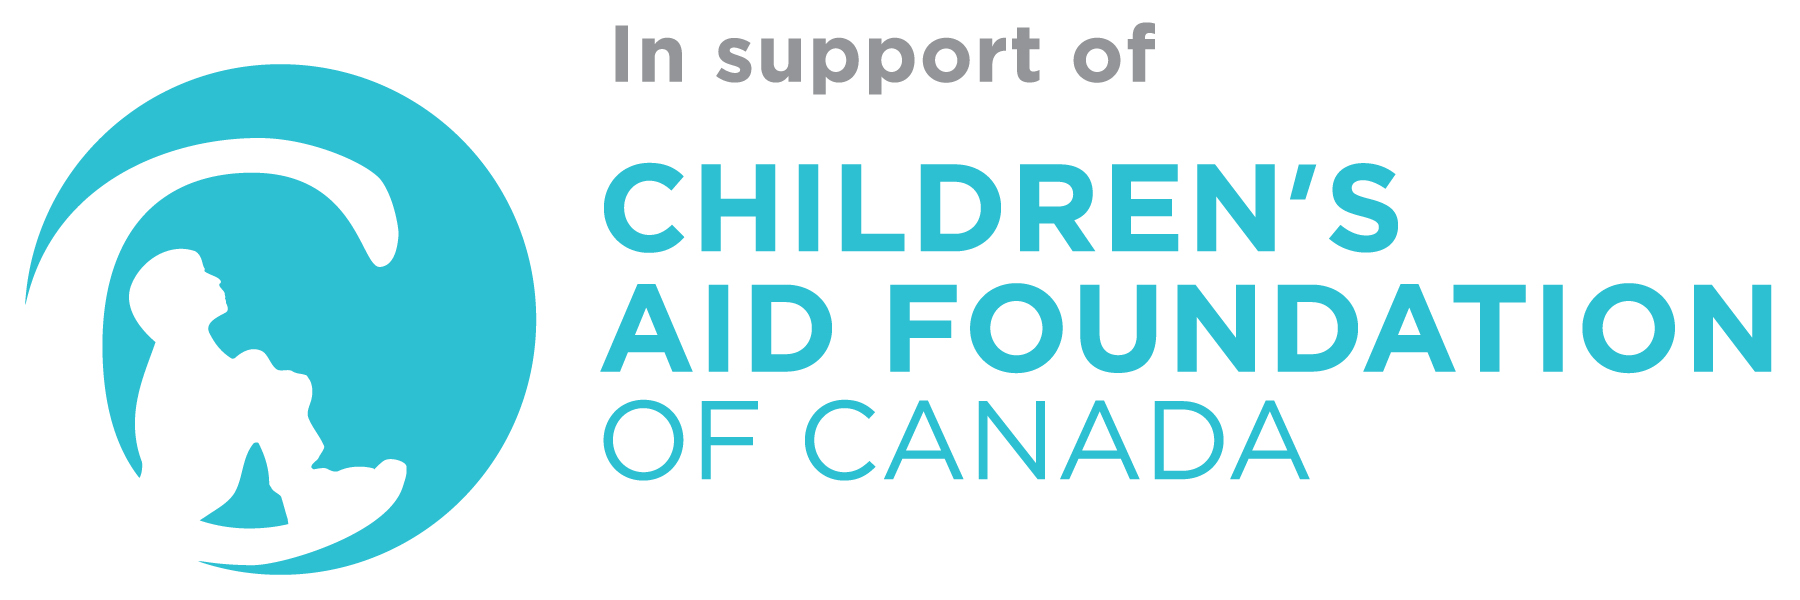 Children's Aid Foundation of Canada: Improving the Lives of Children and Youth